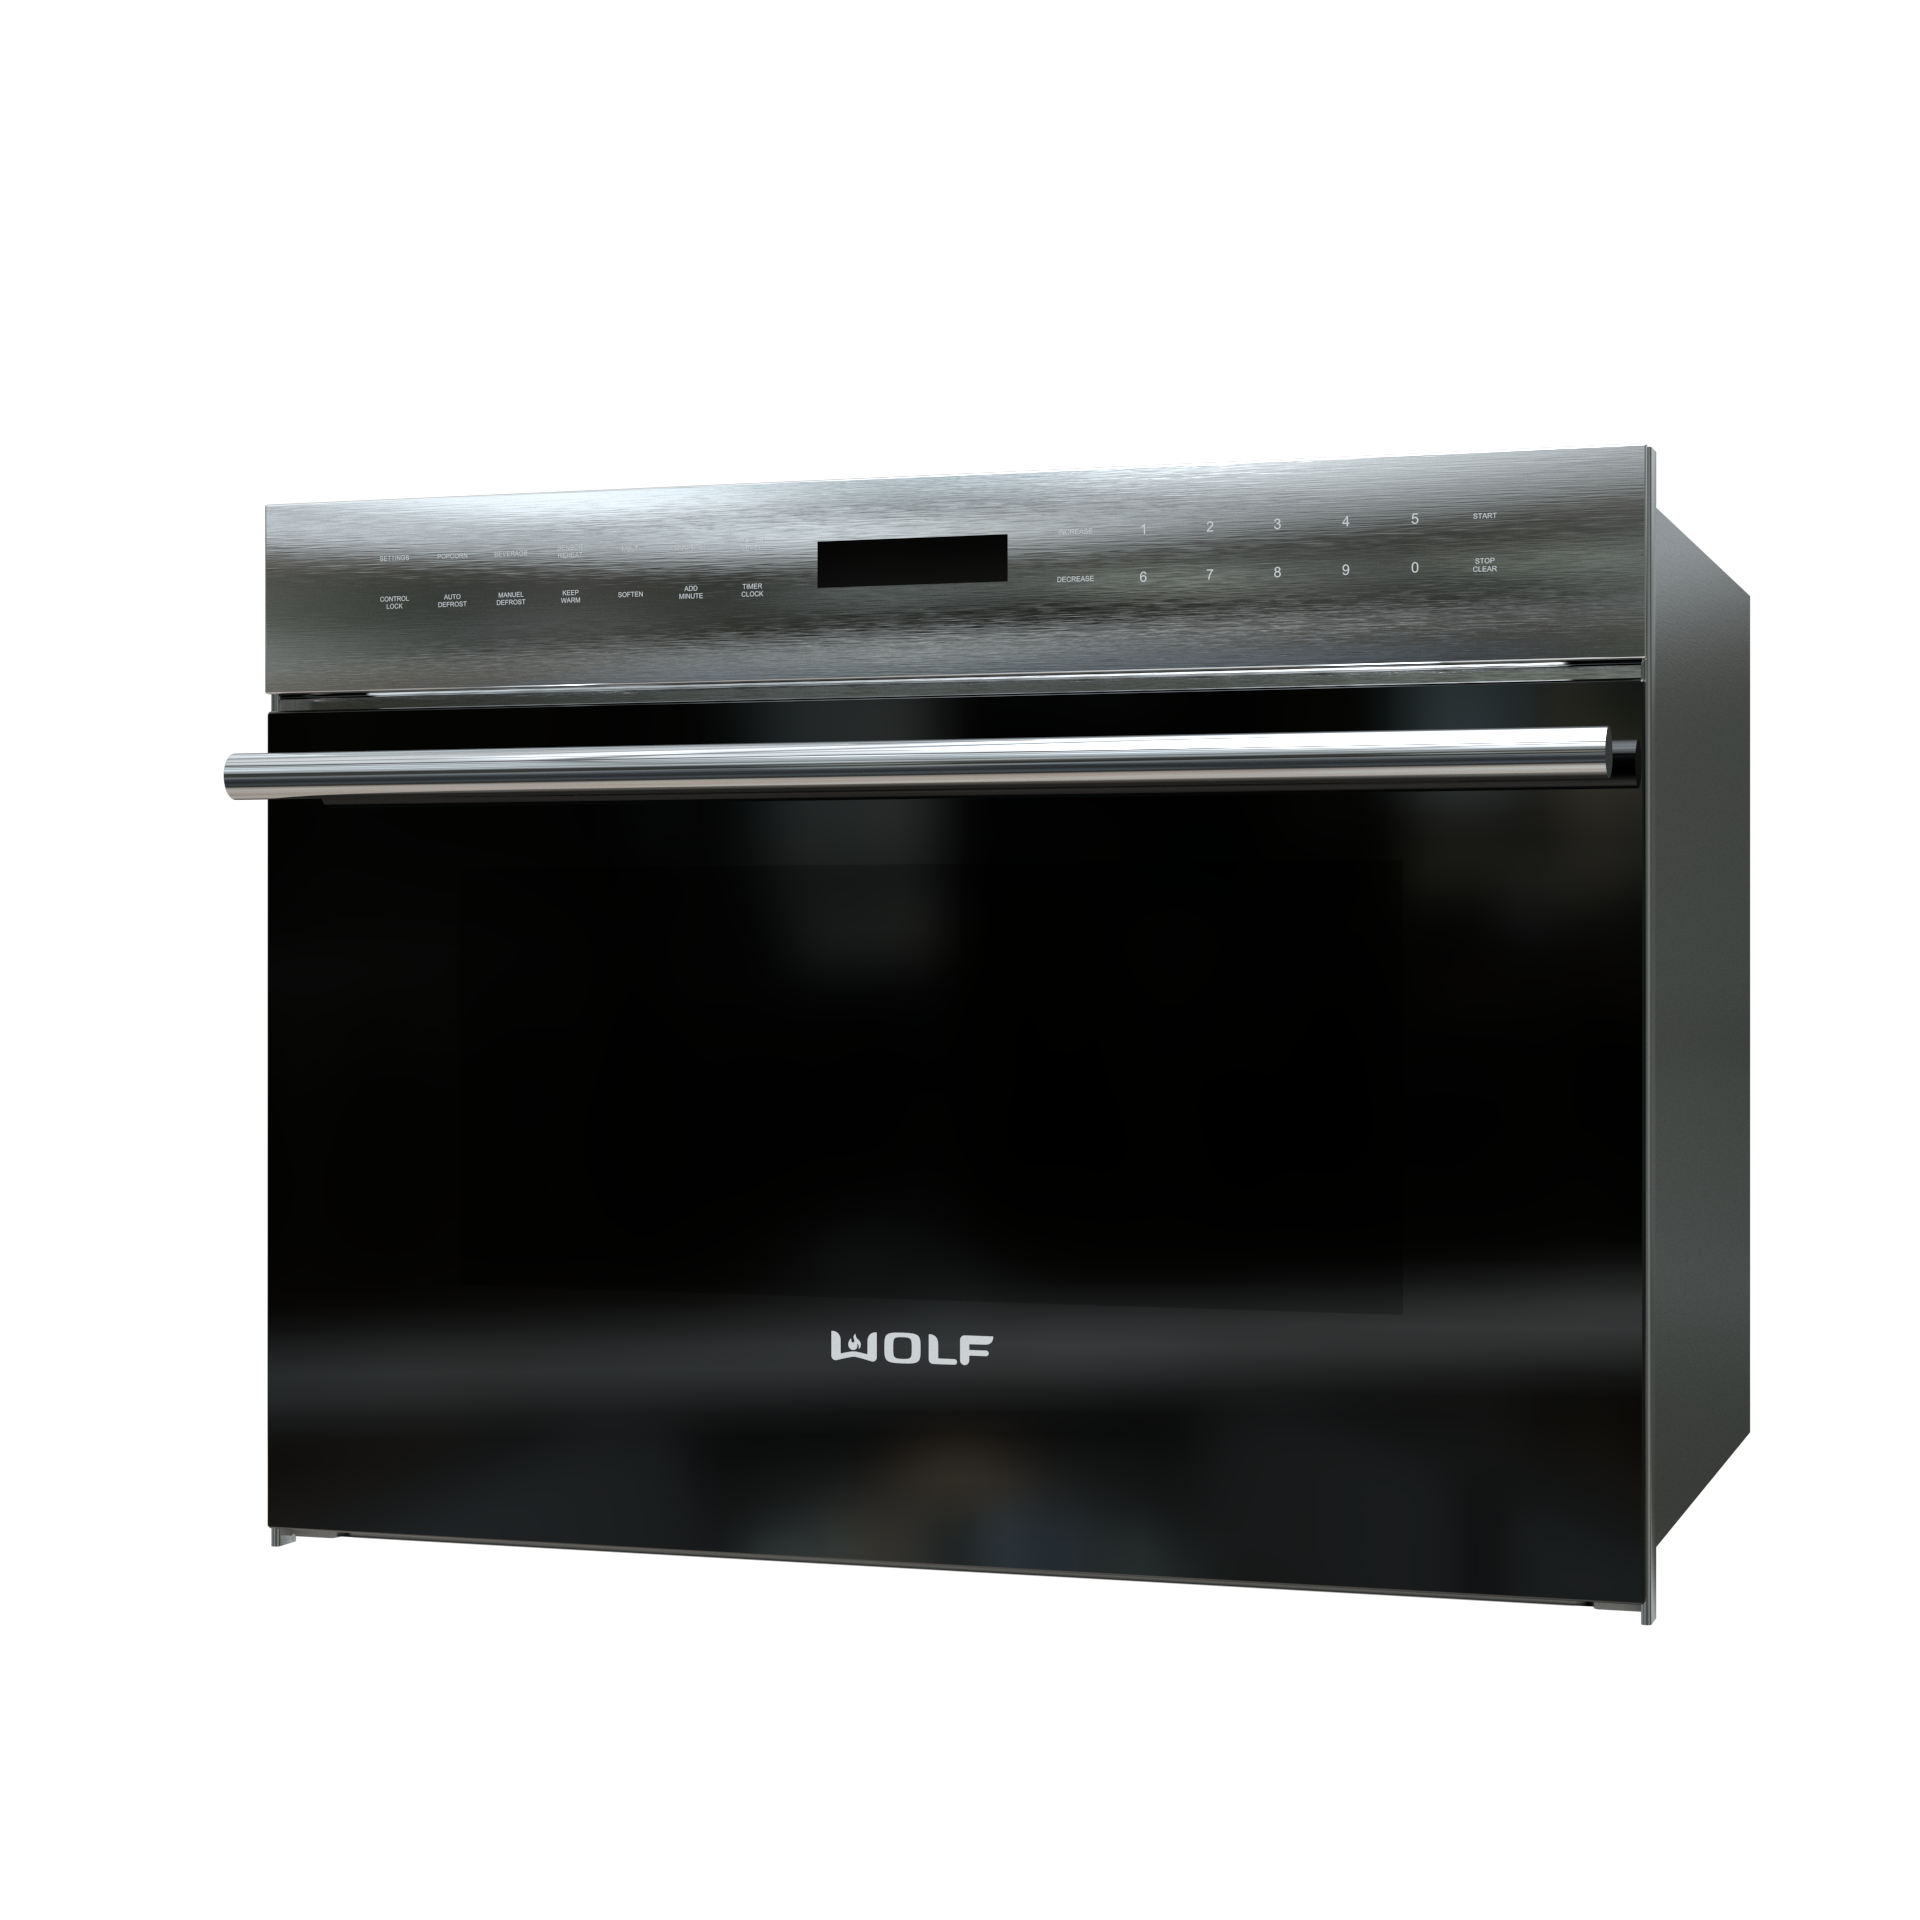 Microwave AI 01 Preview.png